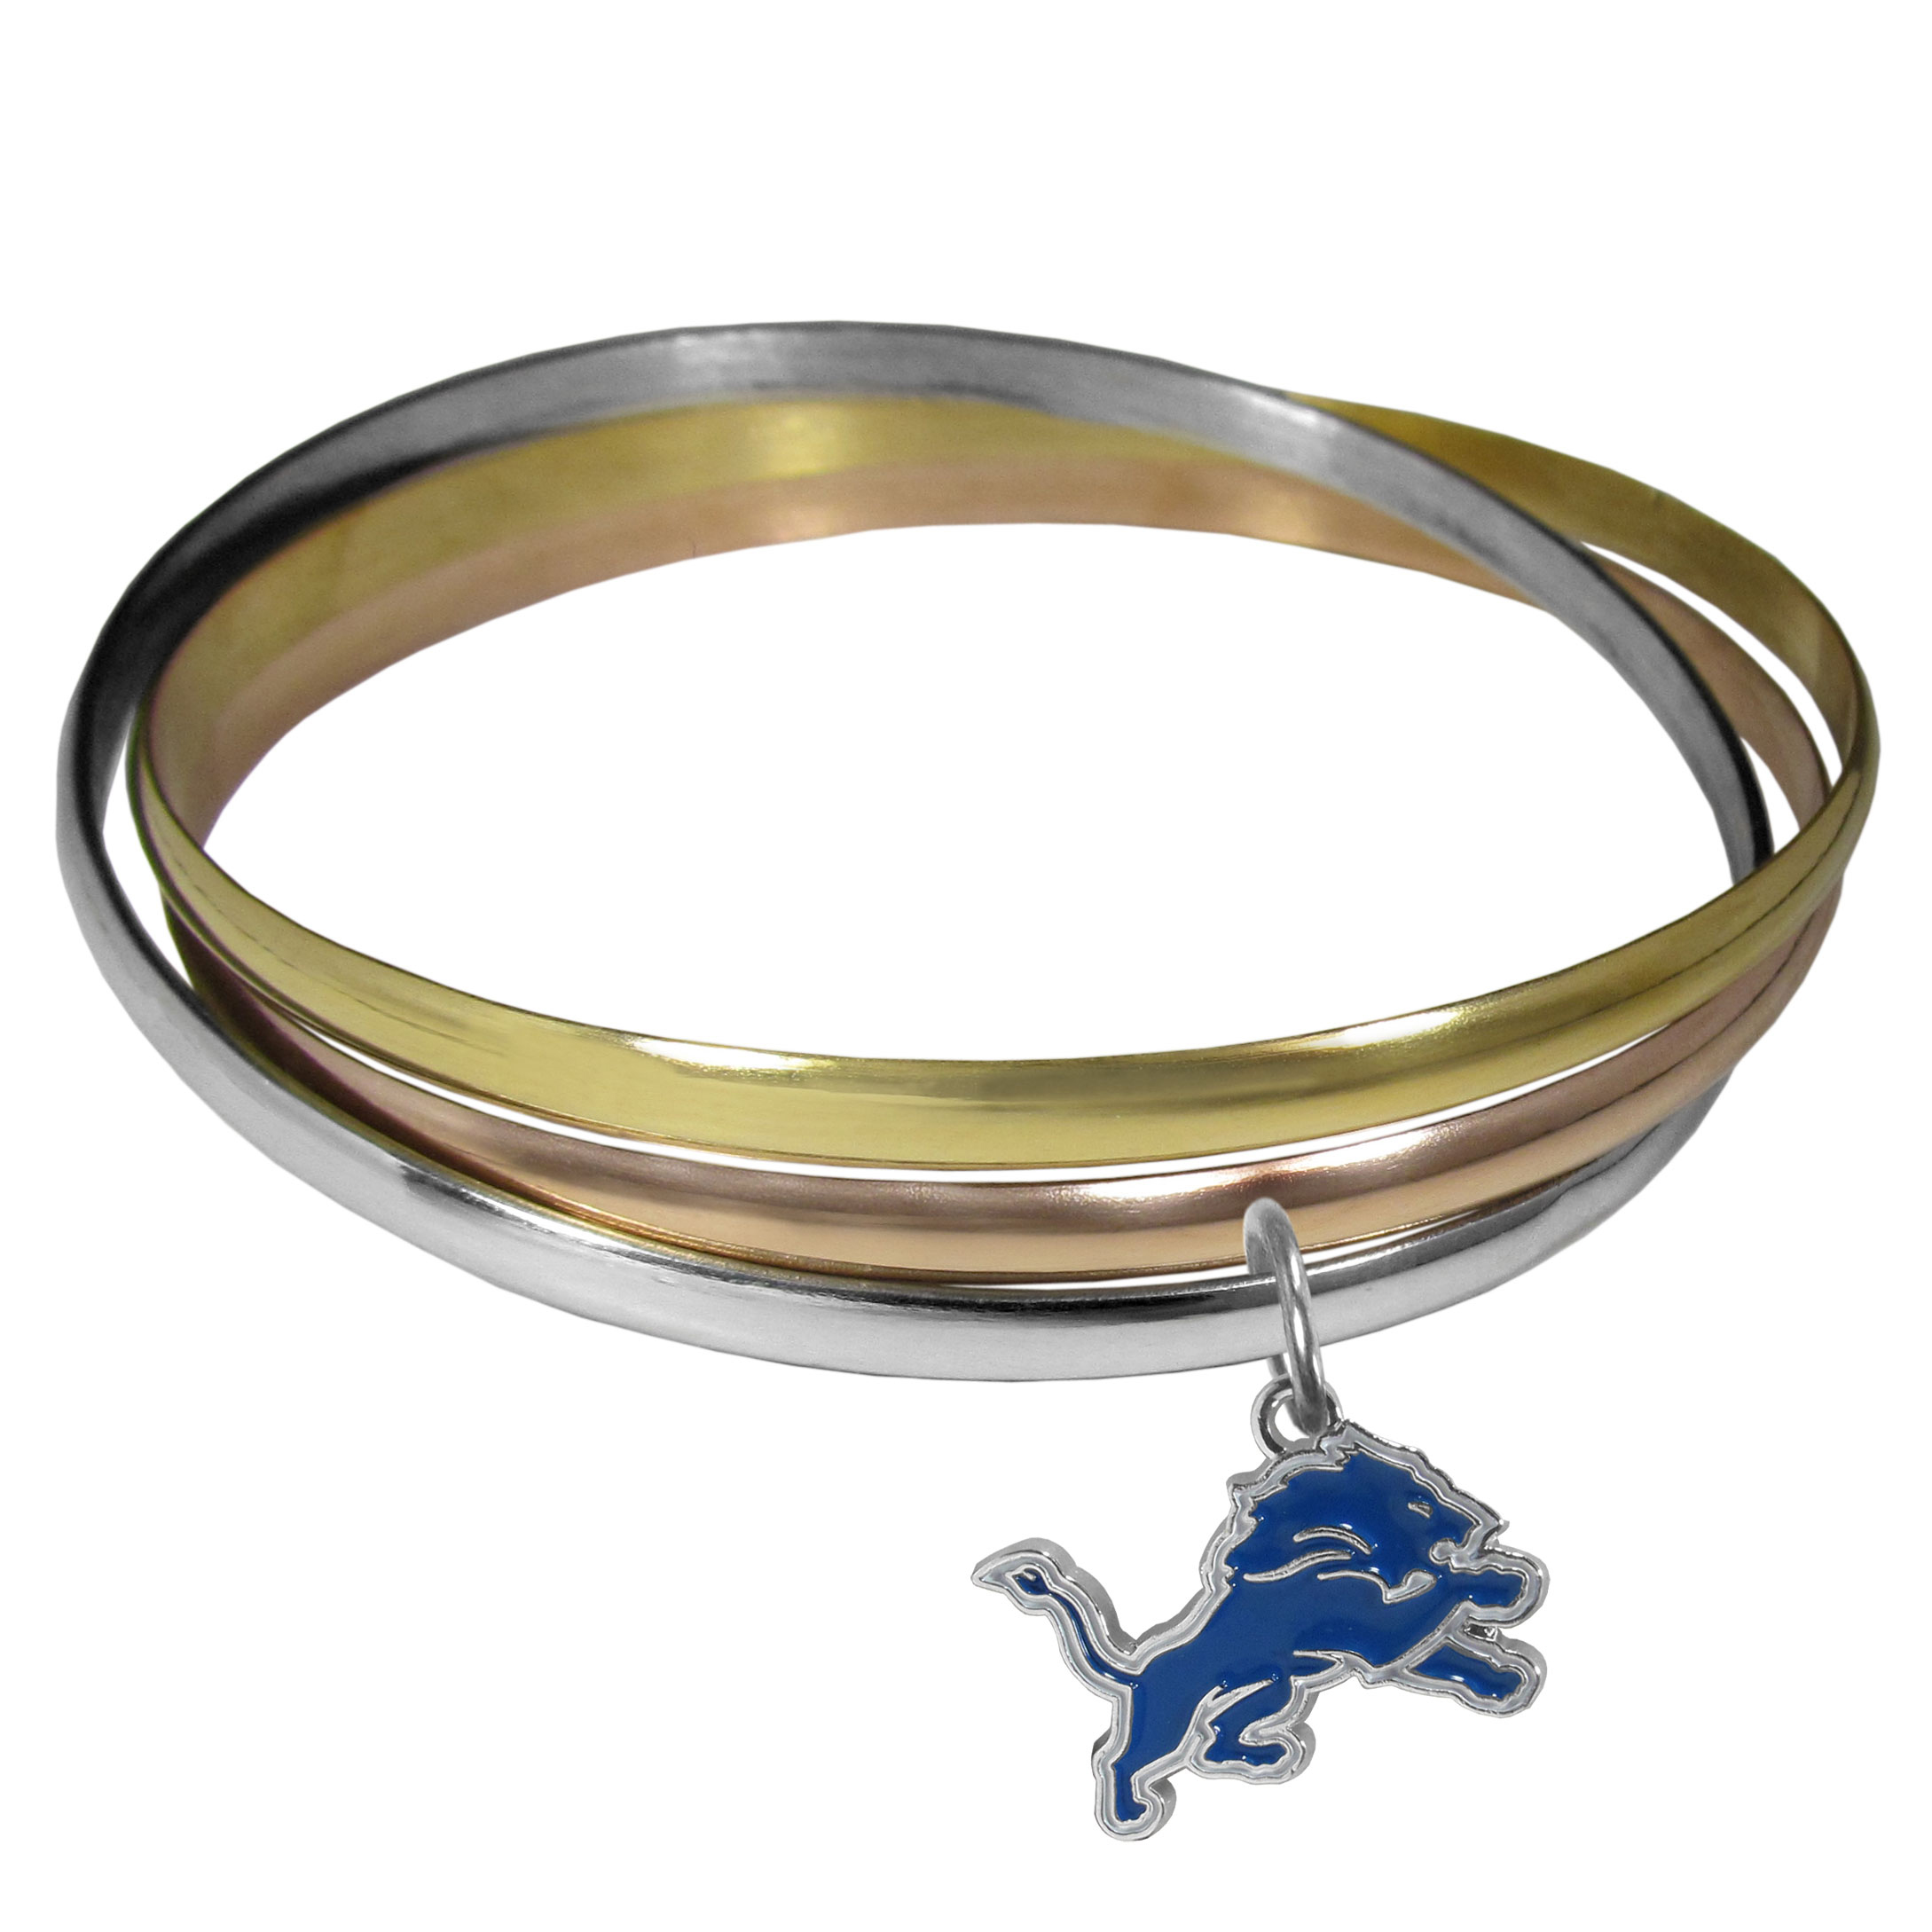 Detroit Lions Tri-color Bangle Bracelet - These beautiful bangles come in a interlocking style and feature a fully cast Detroit Lions charm with enameled team colors. The bracelet has a silver toned bangle, gold tone bangle and brass toned bangle.